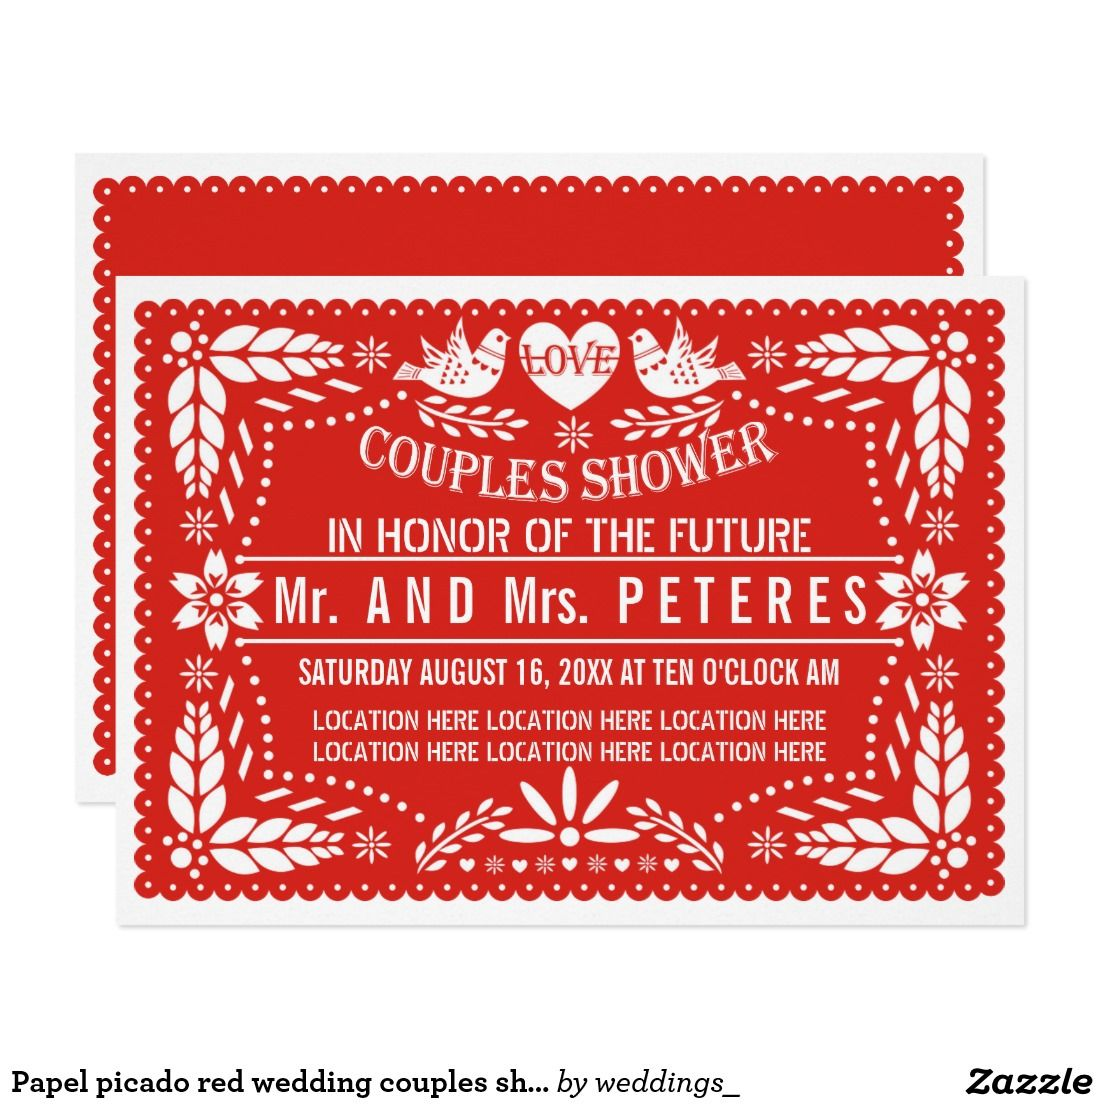 Papel picado red wedding couples shower card | Couple shower ...